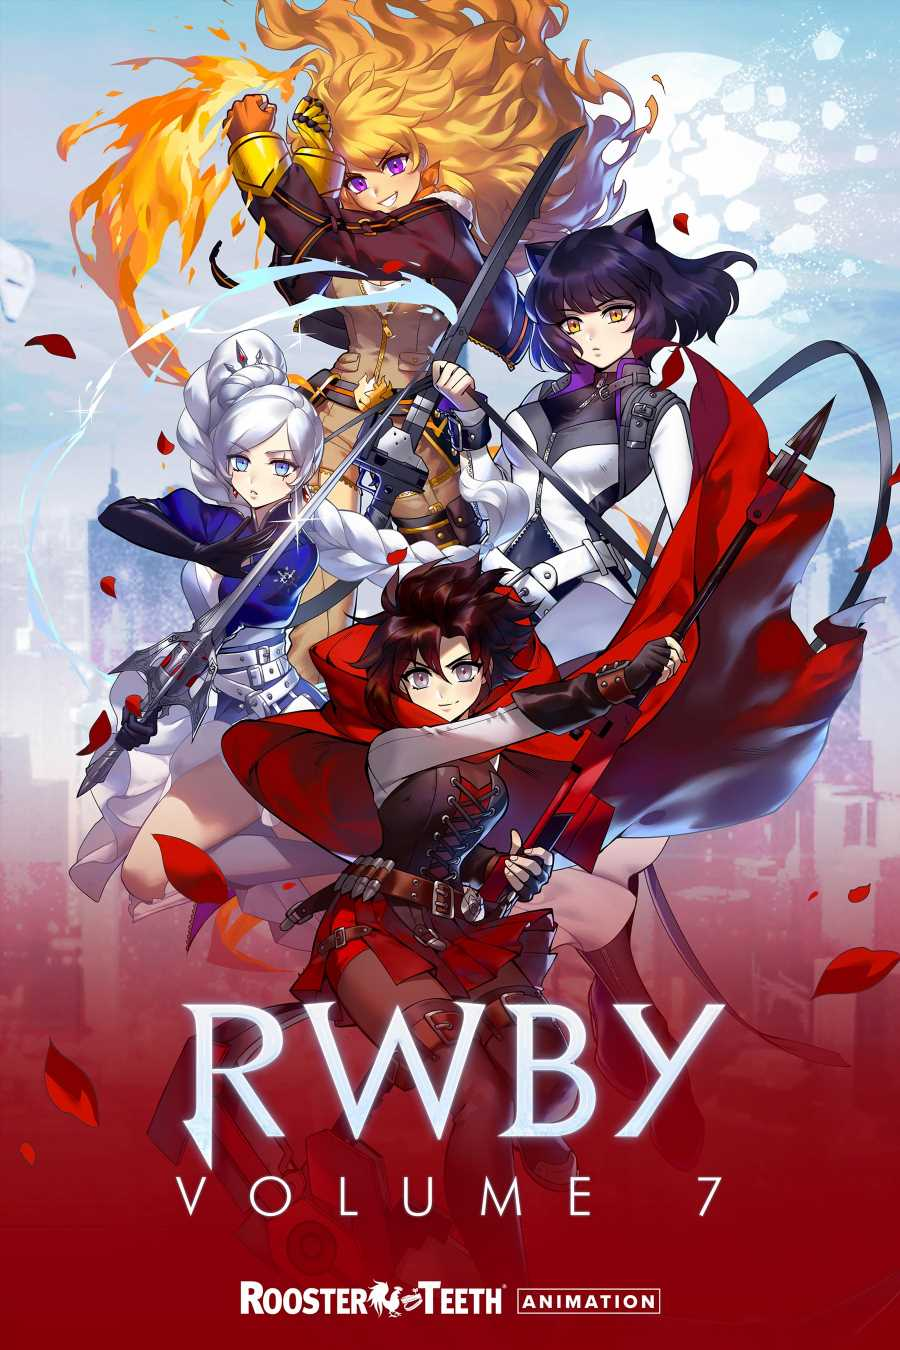 'RWBY' Volume 7: Premiere date and plot details revealed